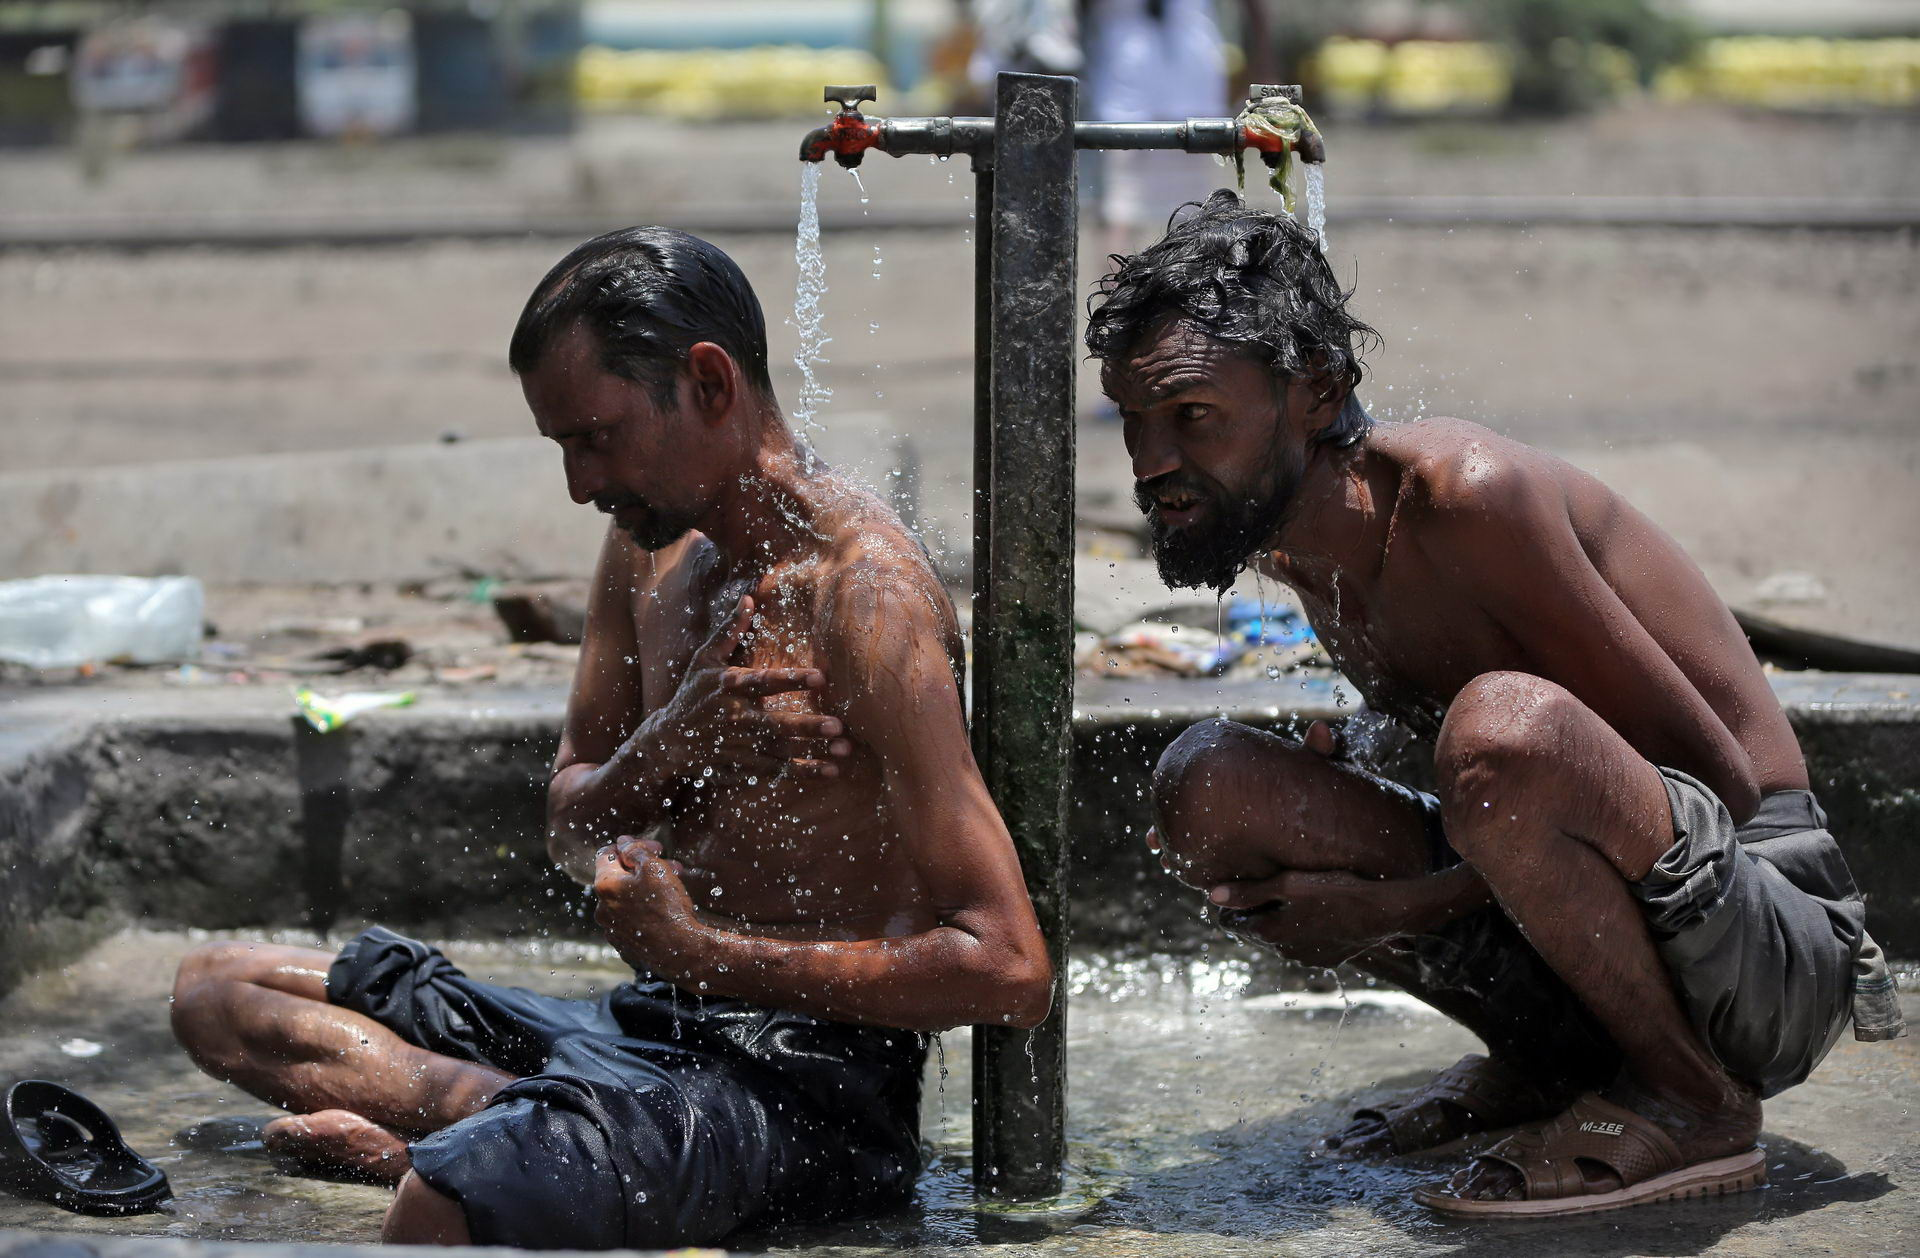 Men bathe at municipal taps along railway tracks in Ahmedabad